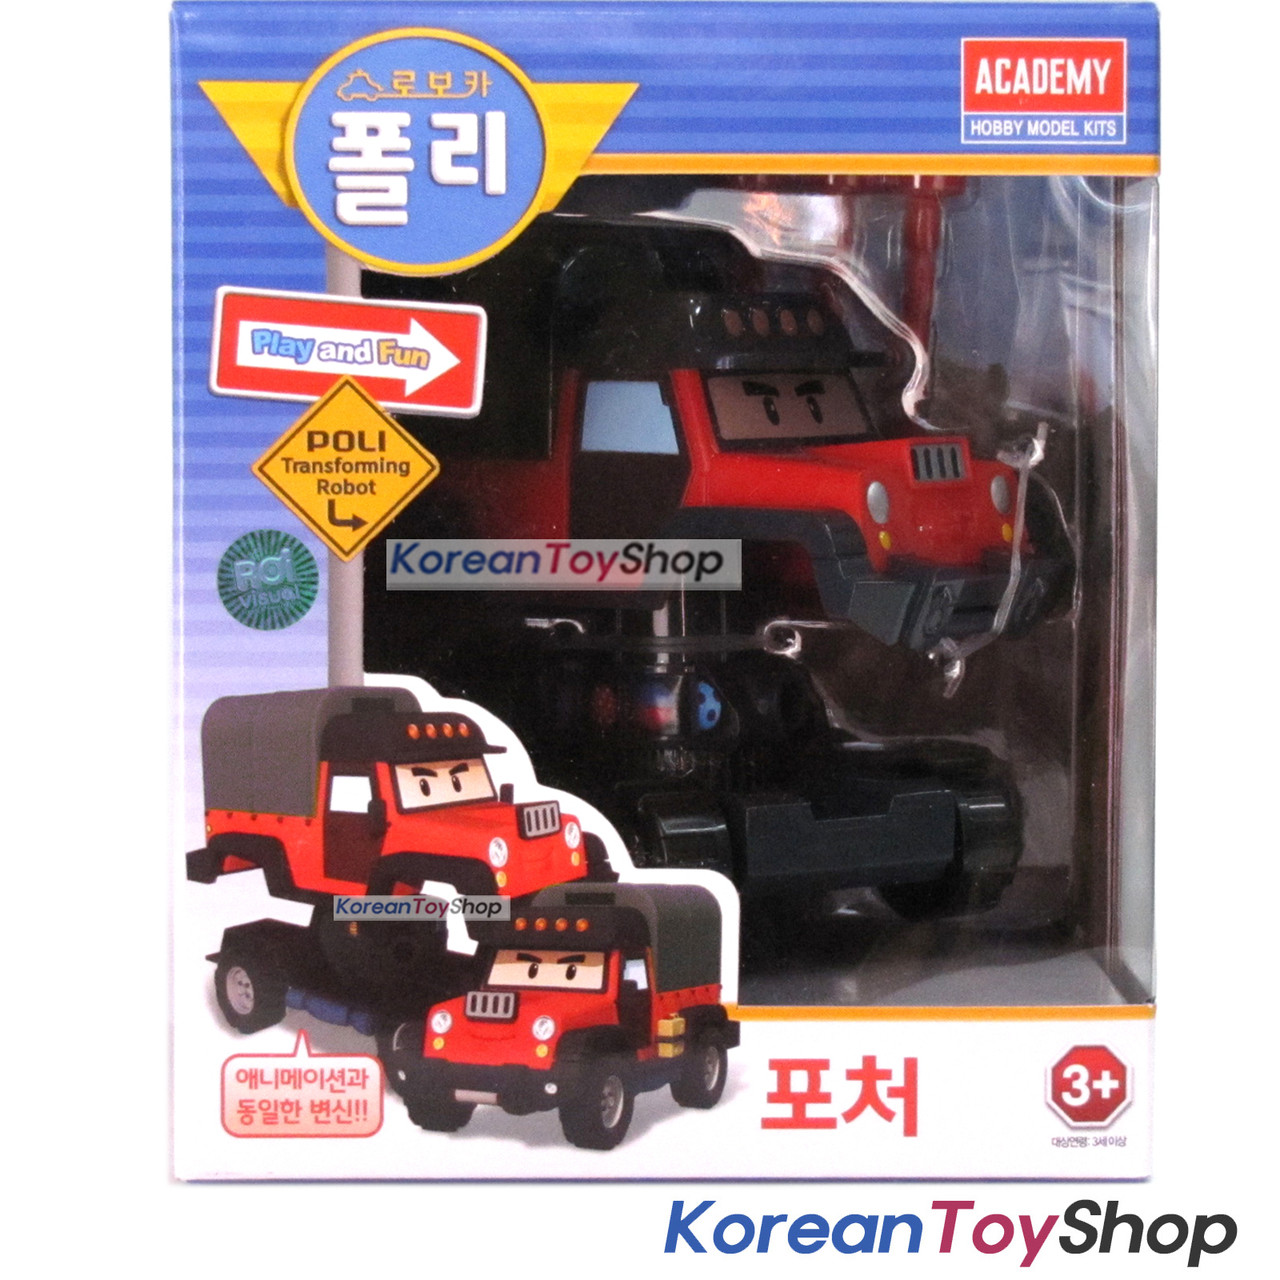 Robocar Poli Poacher Transformer Robot Car Toy Action Figure Academy